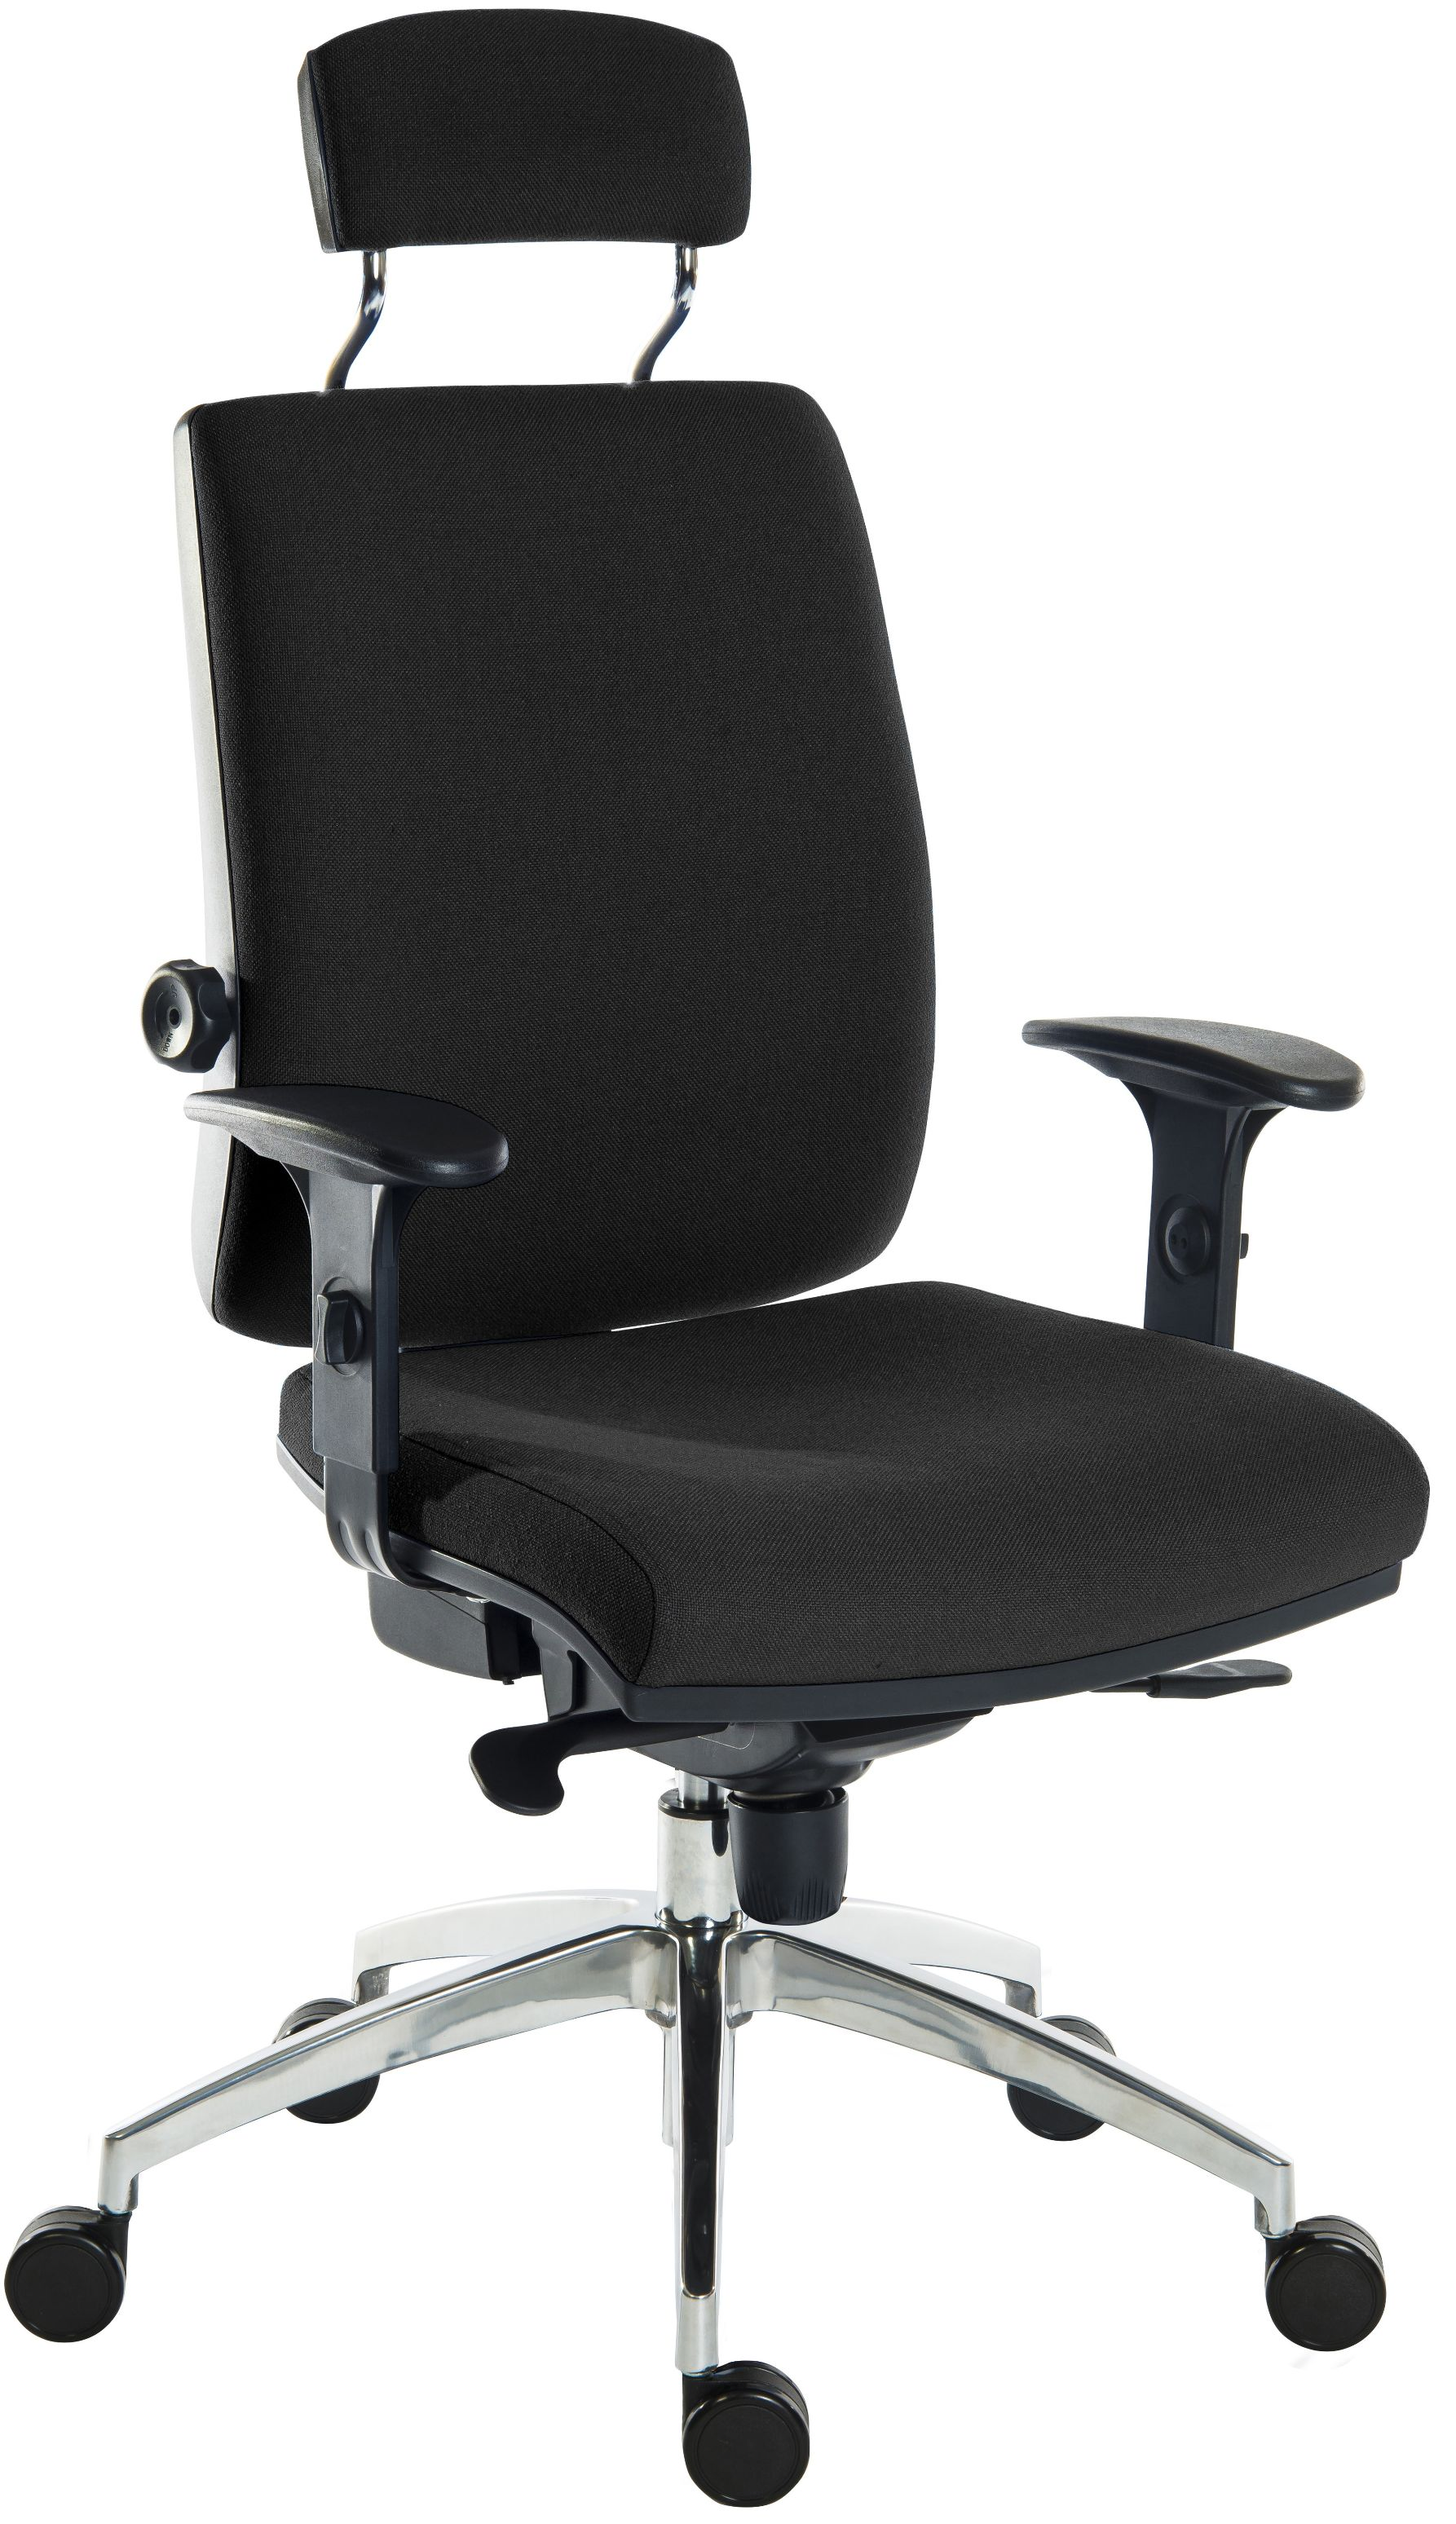 ergonomic desk chair uk the big in fortnite chairs fabric office